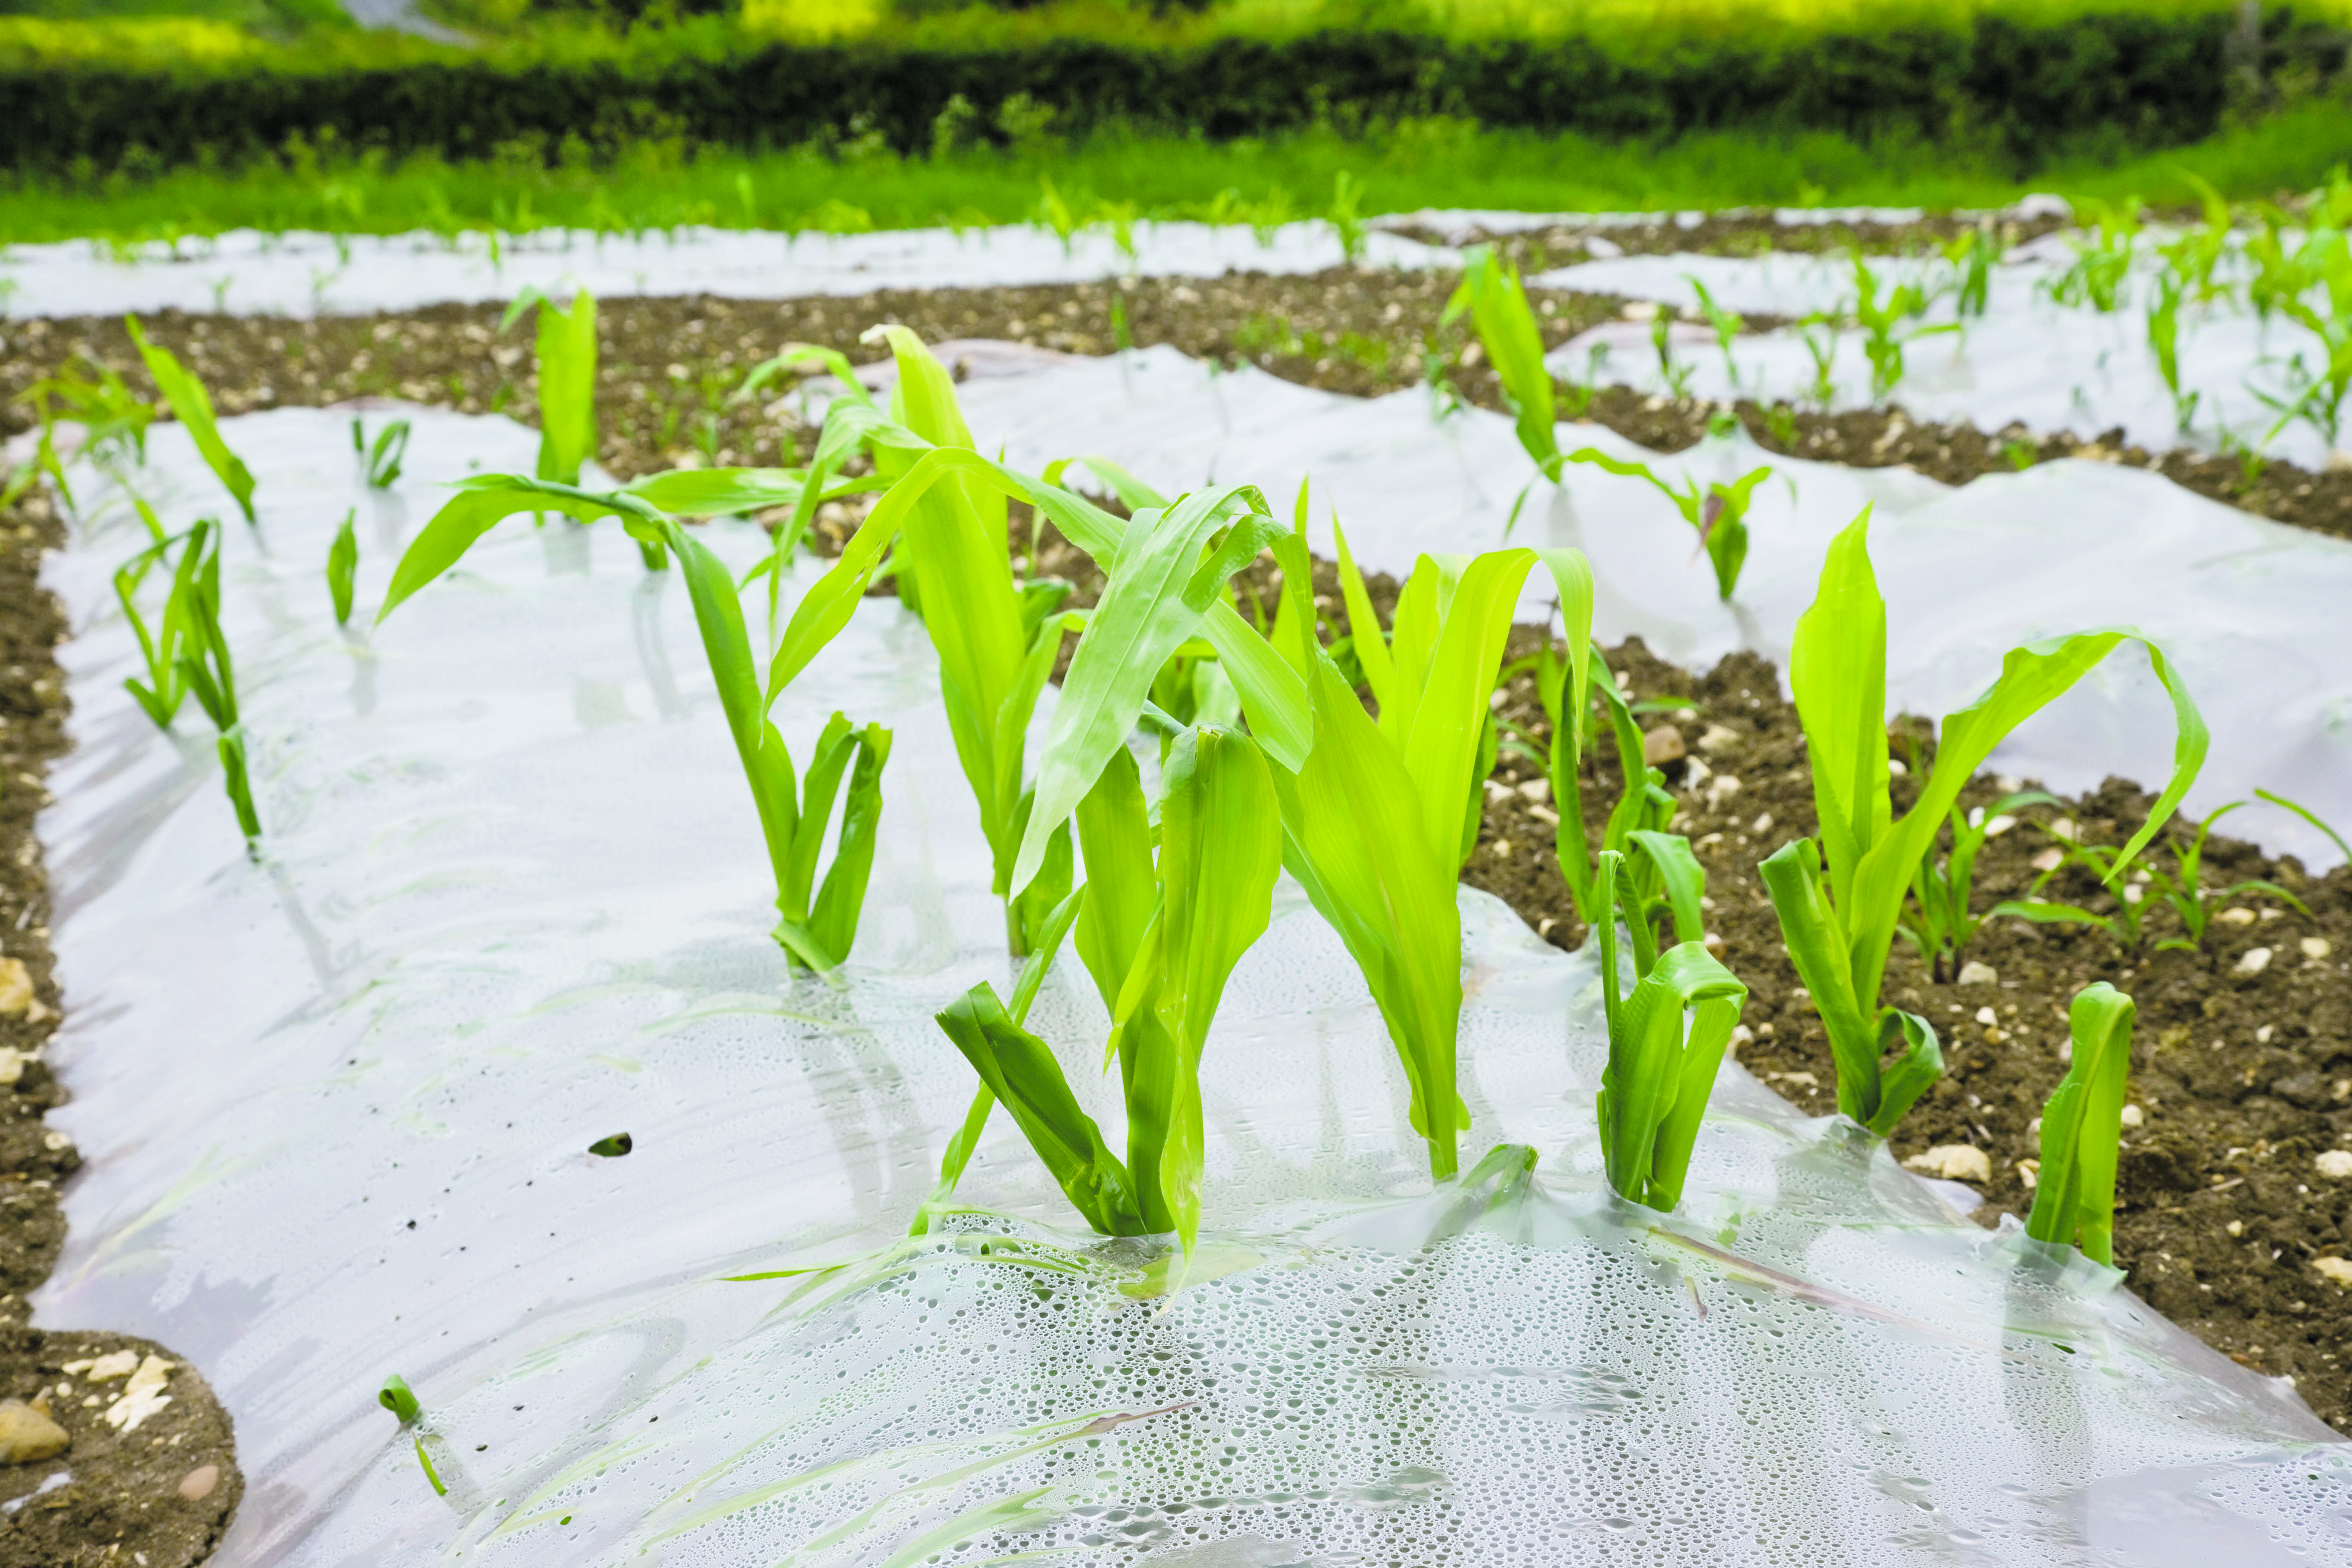 Maize growing under plastic